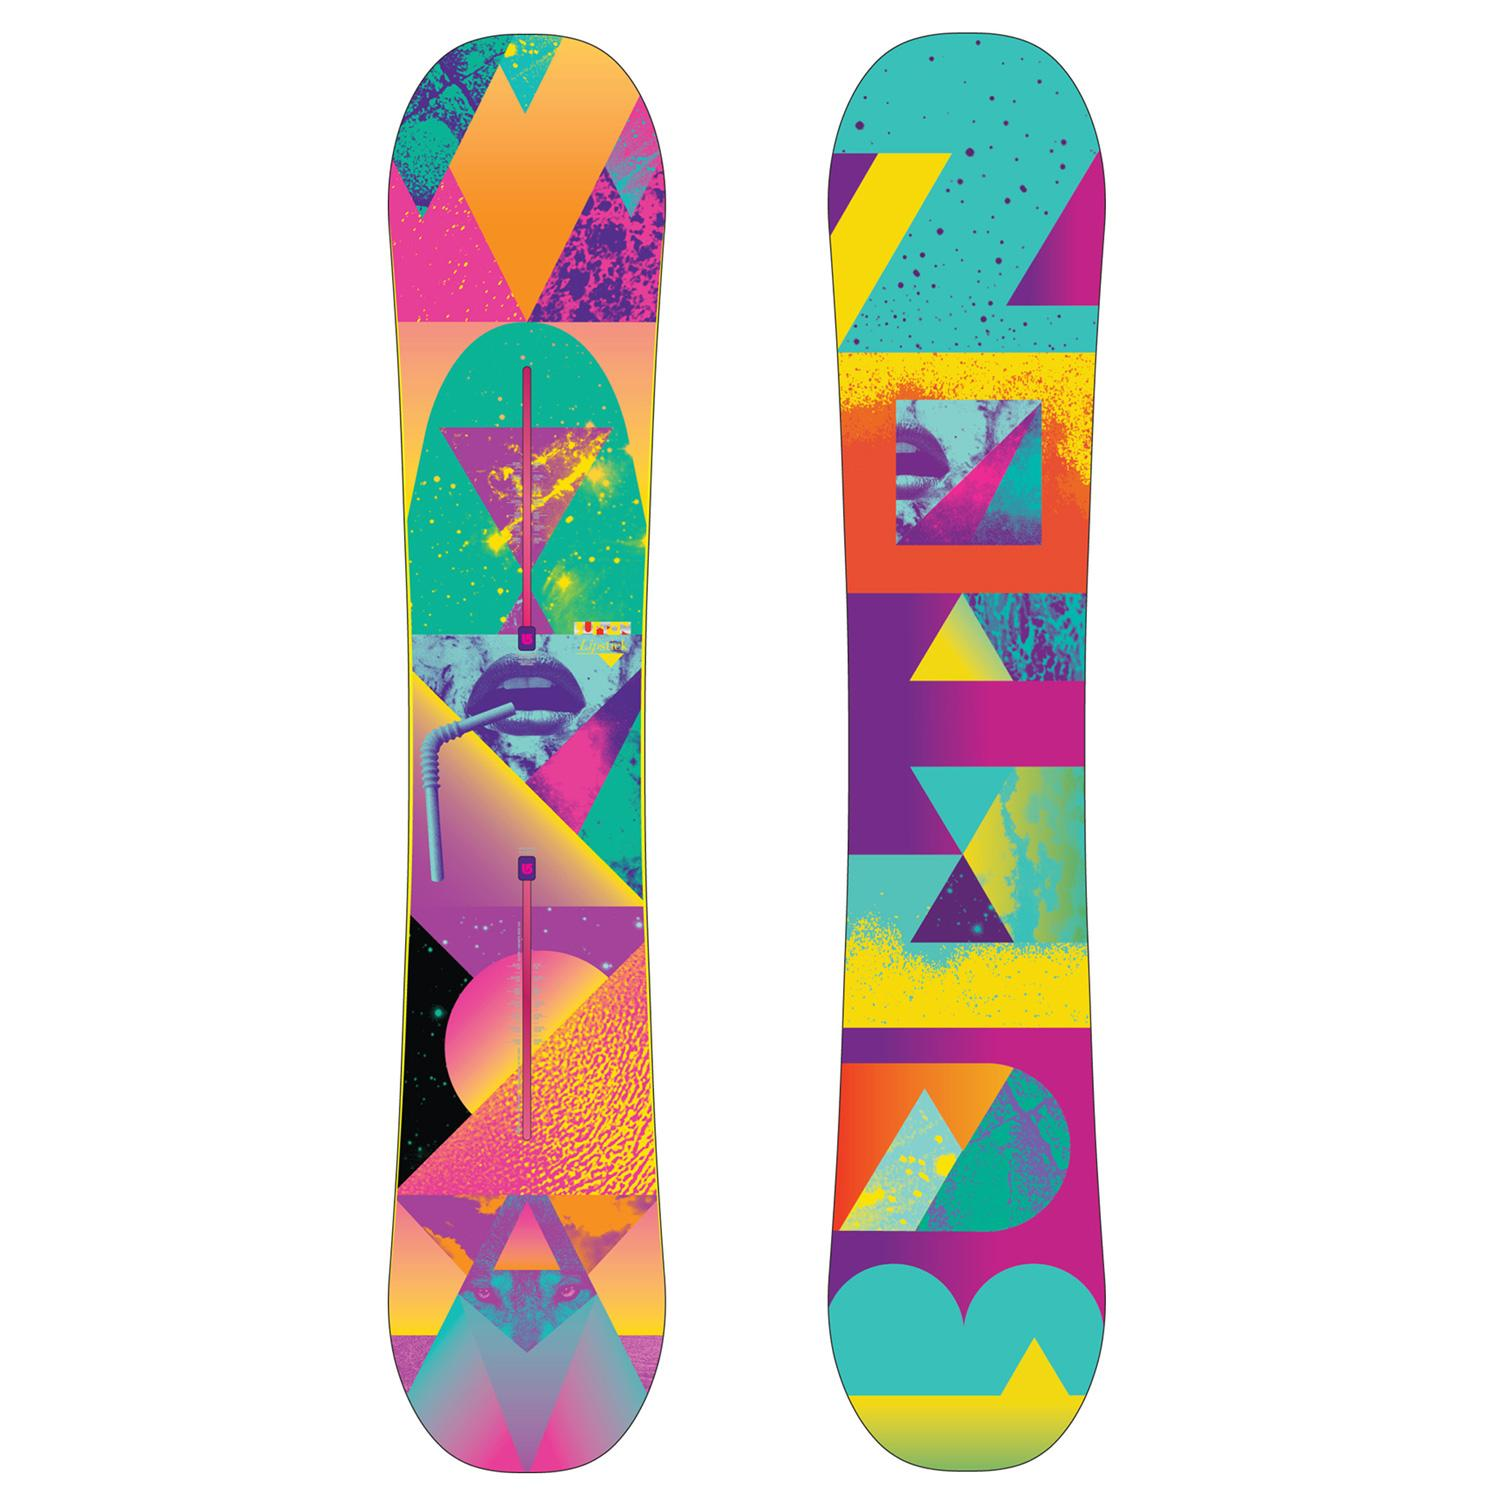 Caked Snowboards